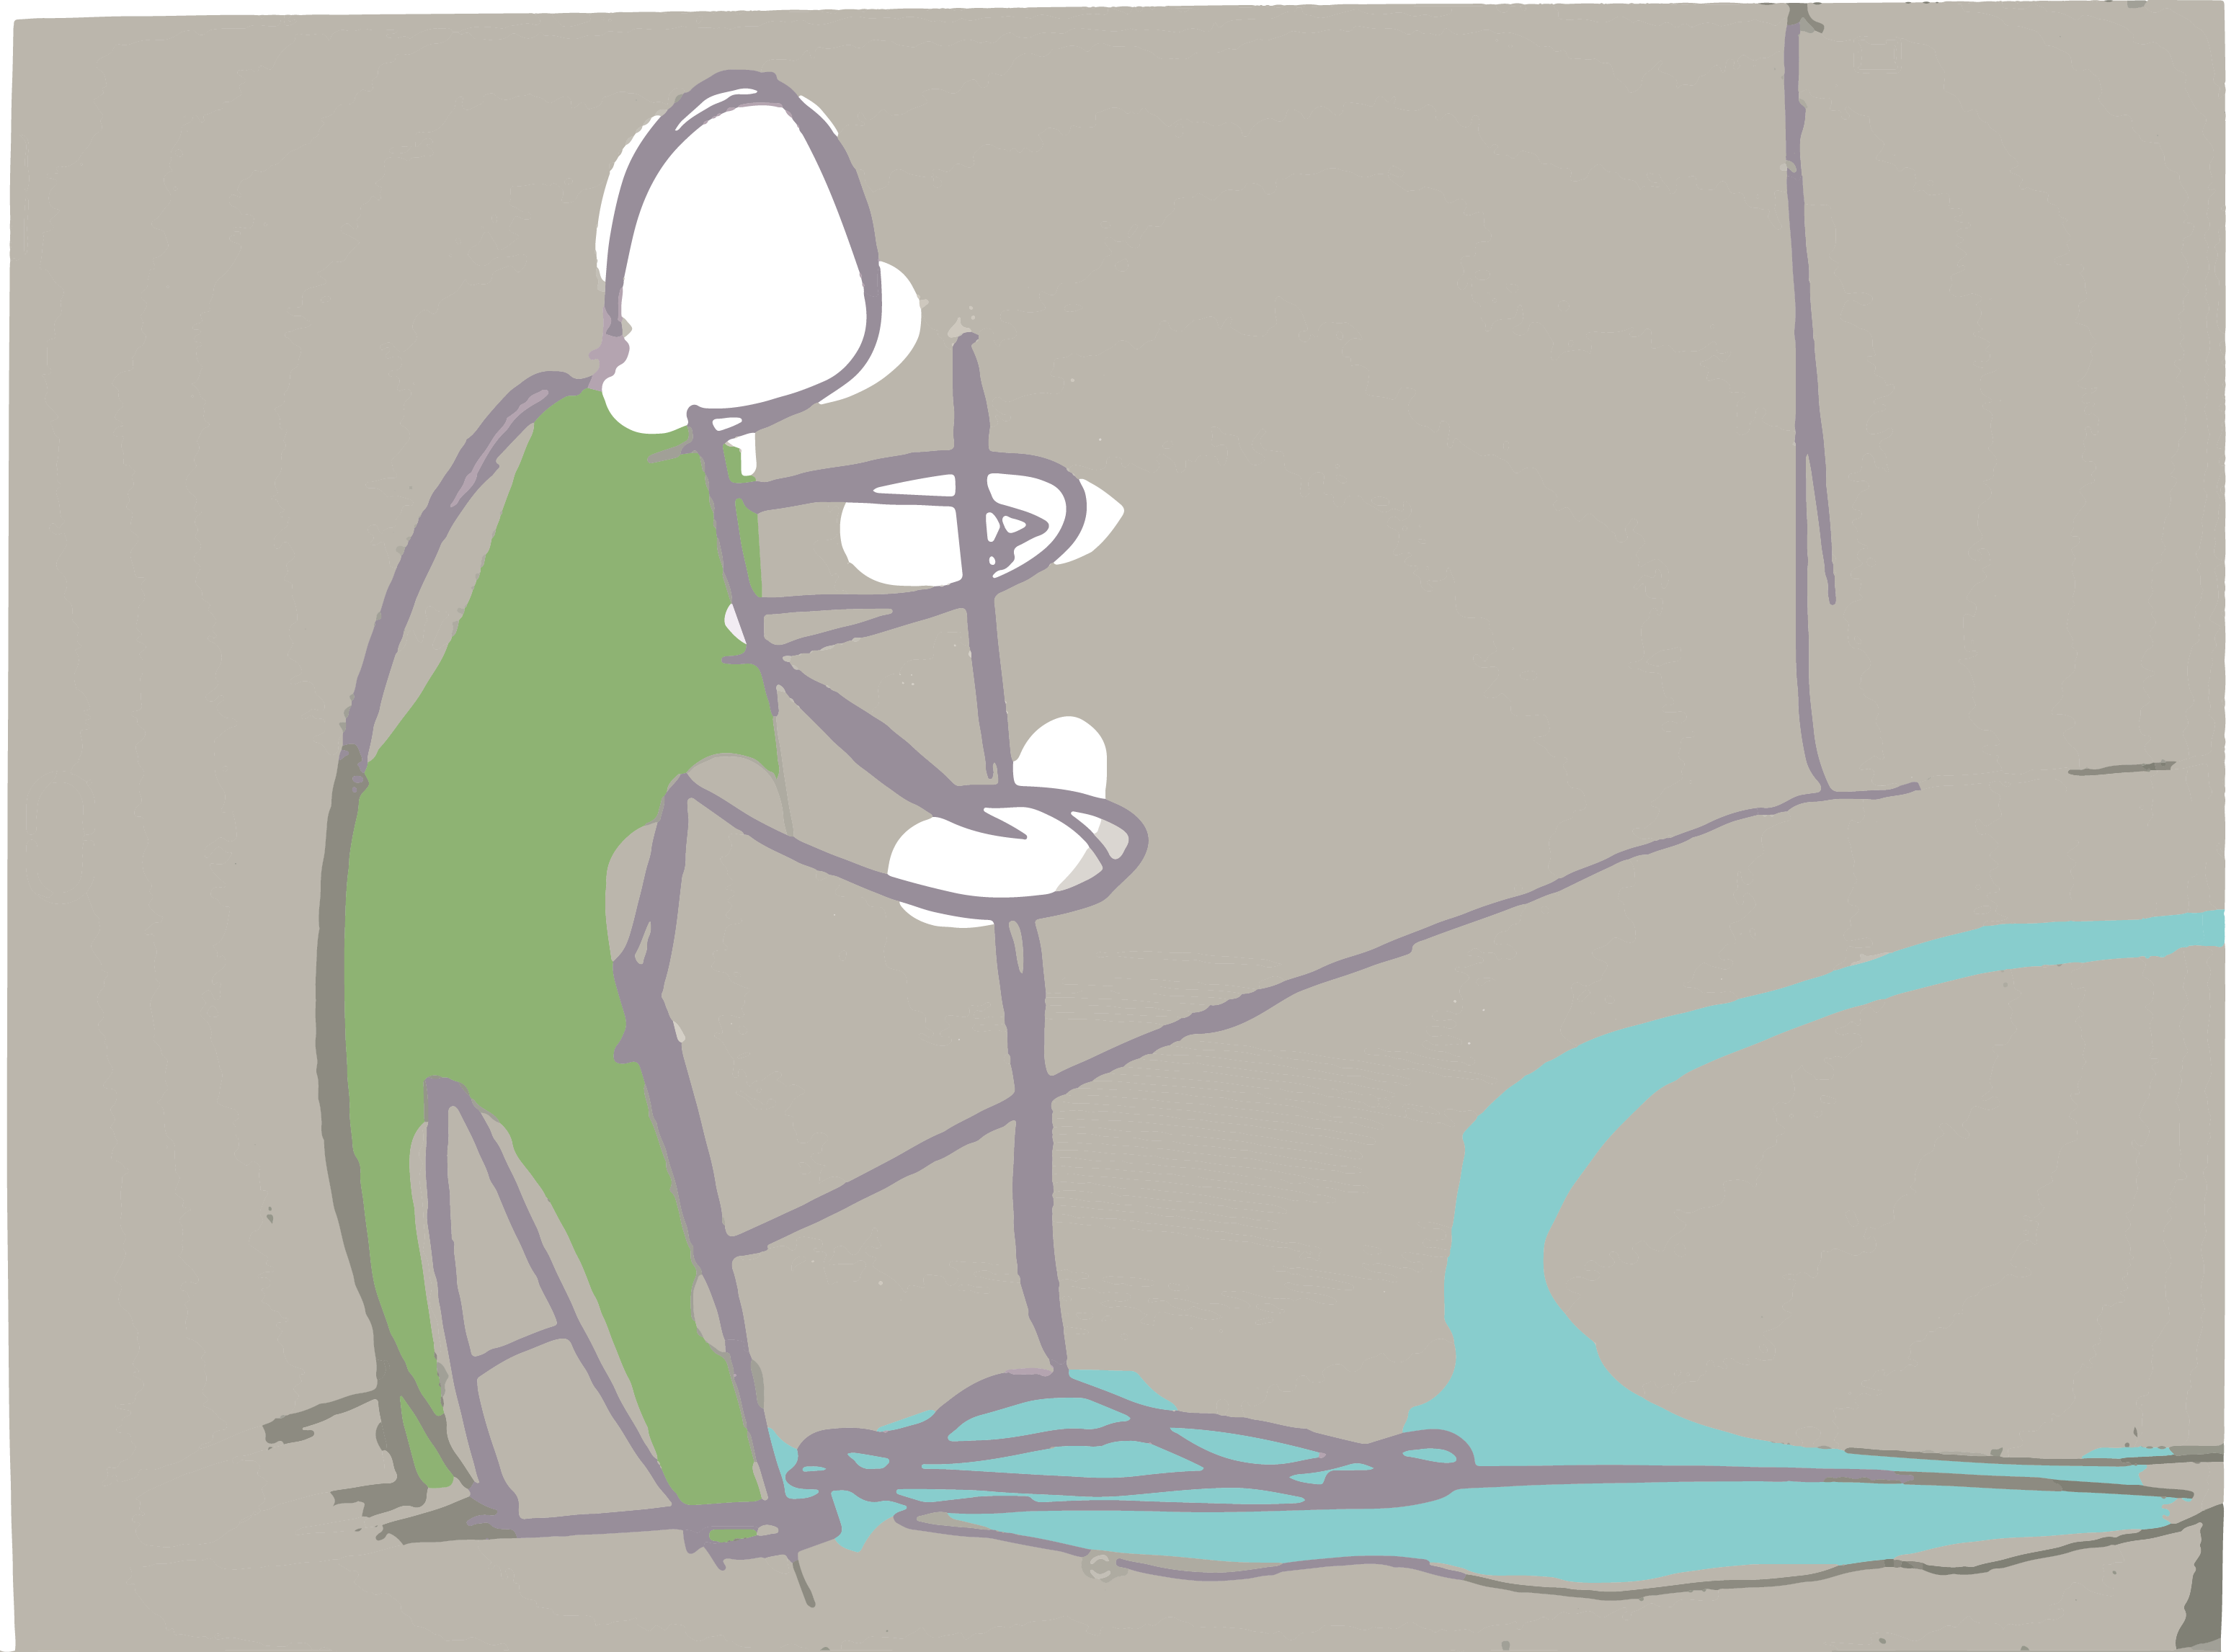 Digital illustration, gray background, a person wearing a green workers jumpsuit mopping the floor.